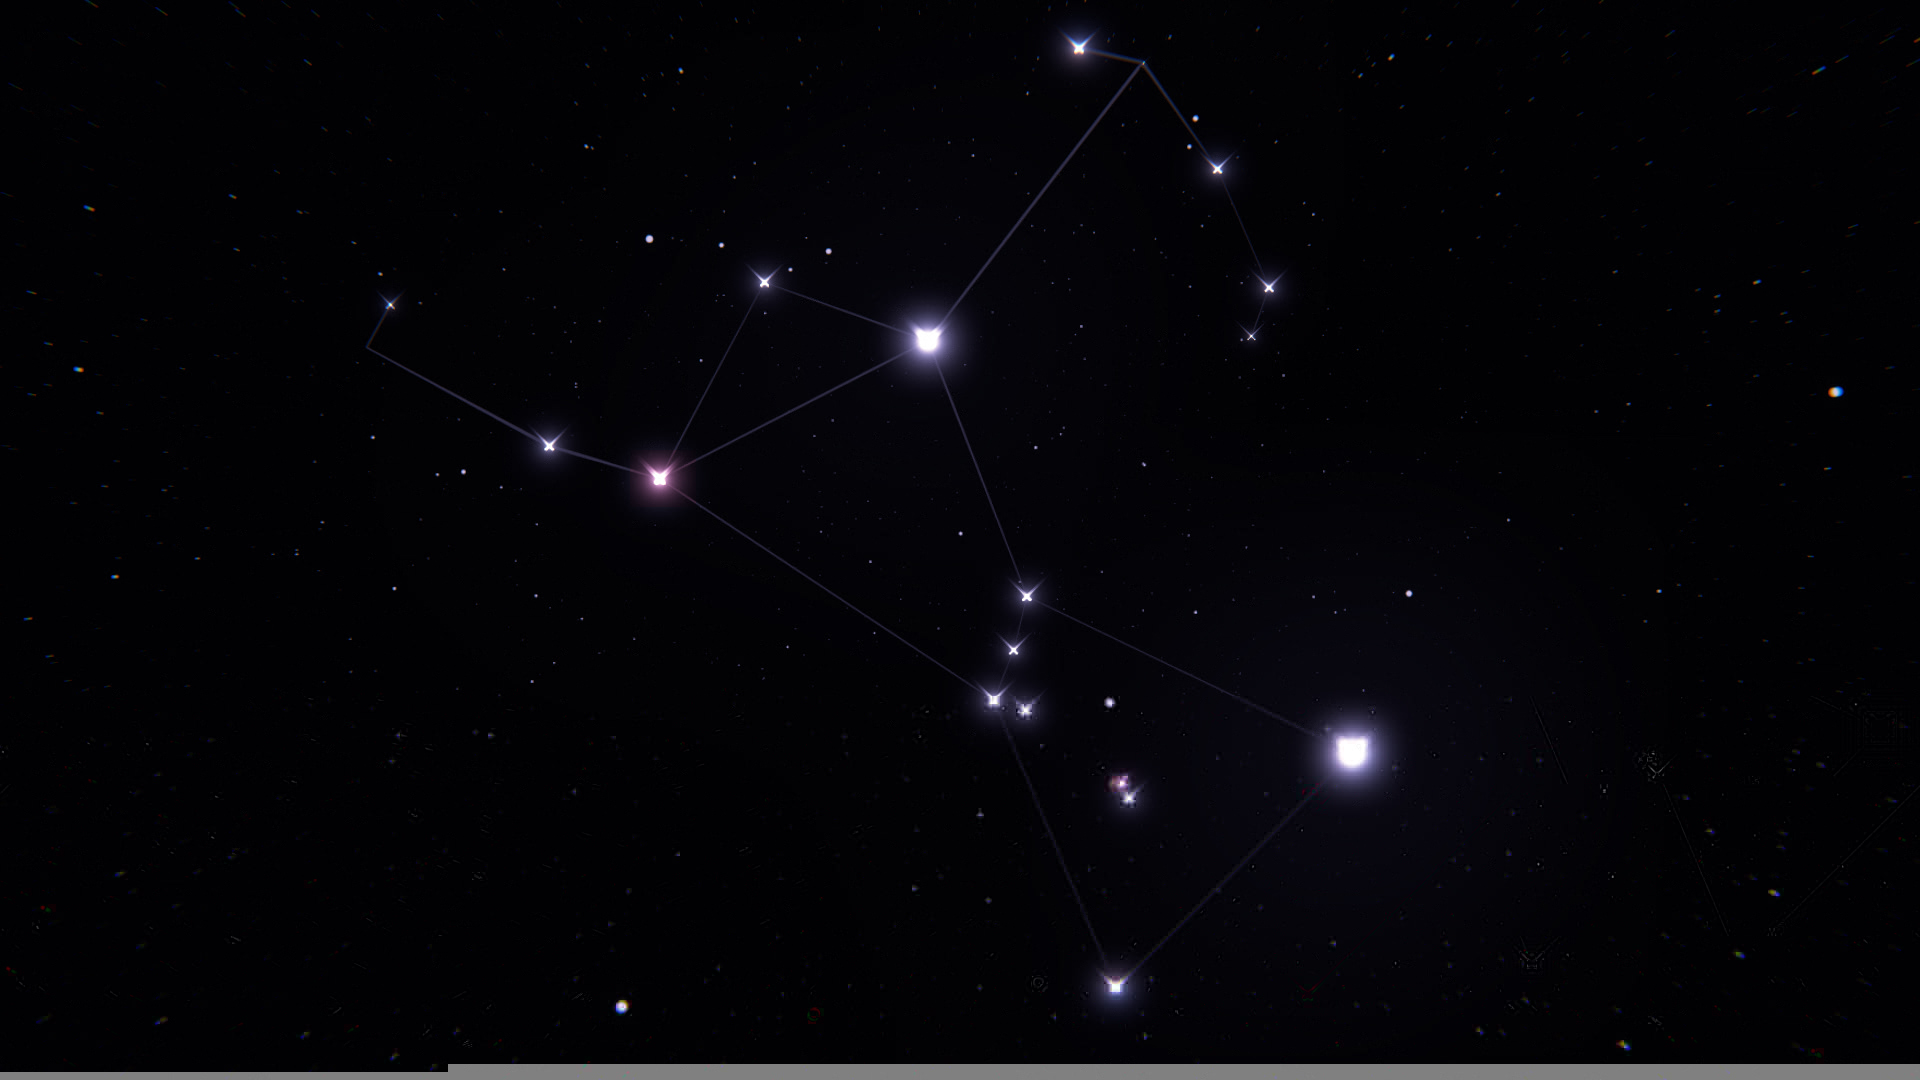 Wallpaper orion constellation stars space wallpapers space 1920x1080